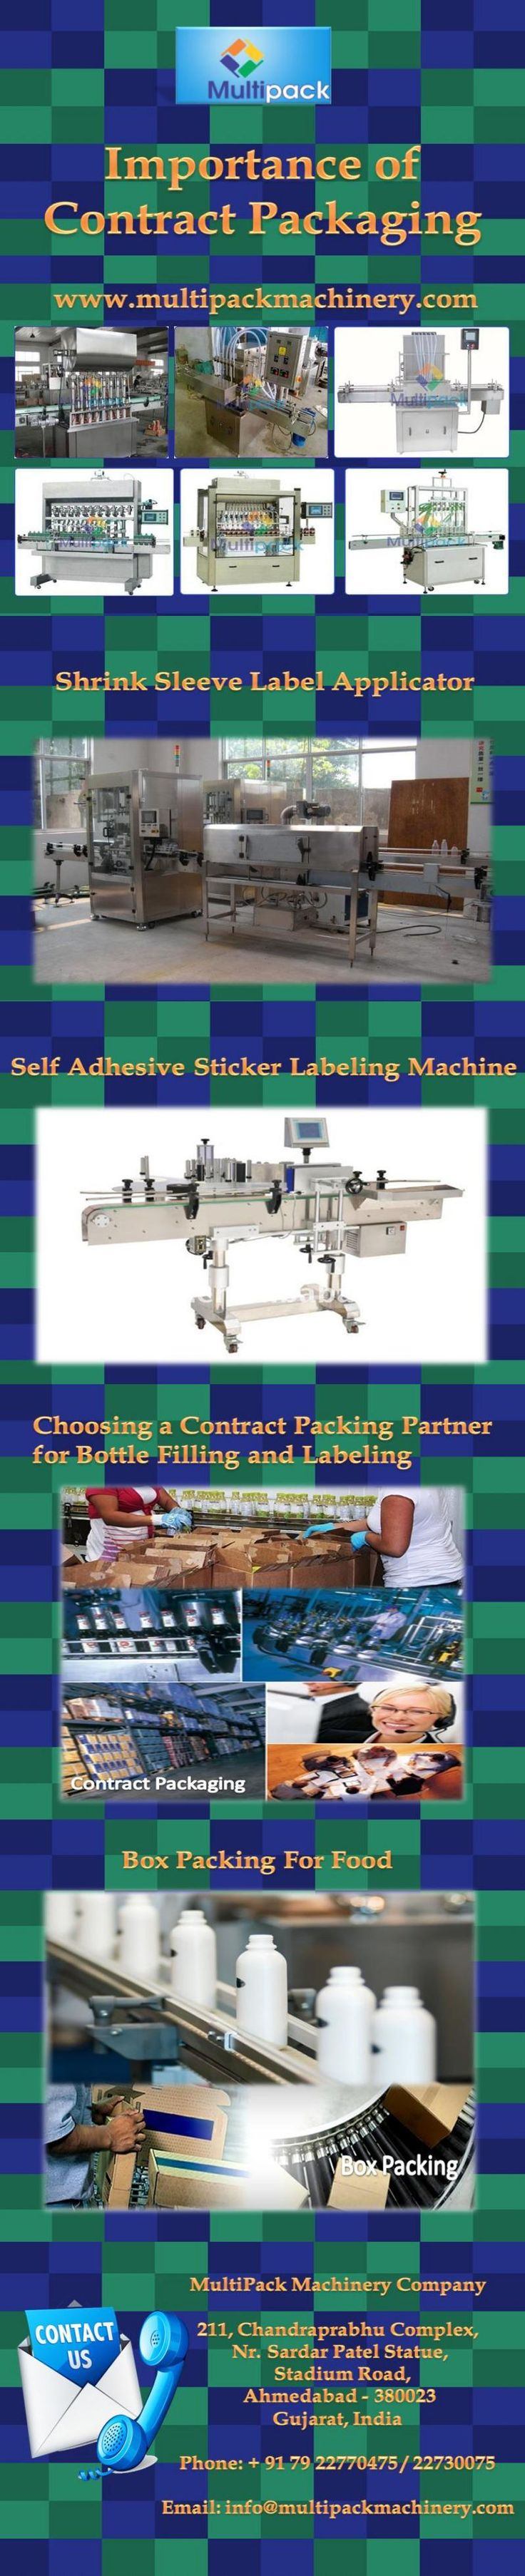 "Pharmaceutical products are in the class of goods for human consumption and a contract packer shall be responsible for ensuring that ""current good manufacturing practices"" are followed. You may also require the contractor to have a cGMP certification to guarantee safe products. Contract packing has great advantages in manufacturing.  Visit at http://www.multipackmachinery.com/contact-us/"